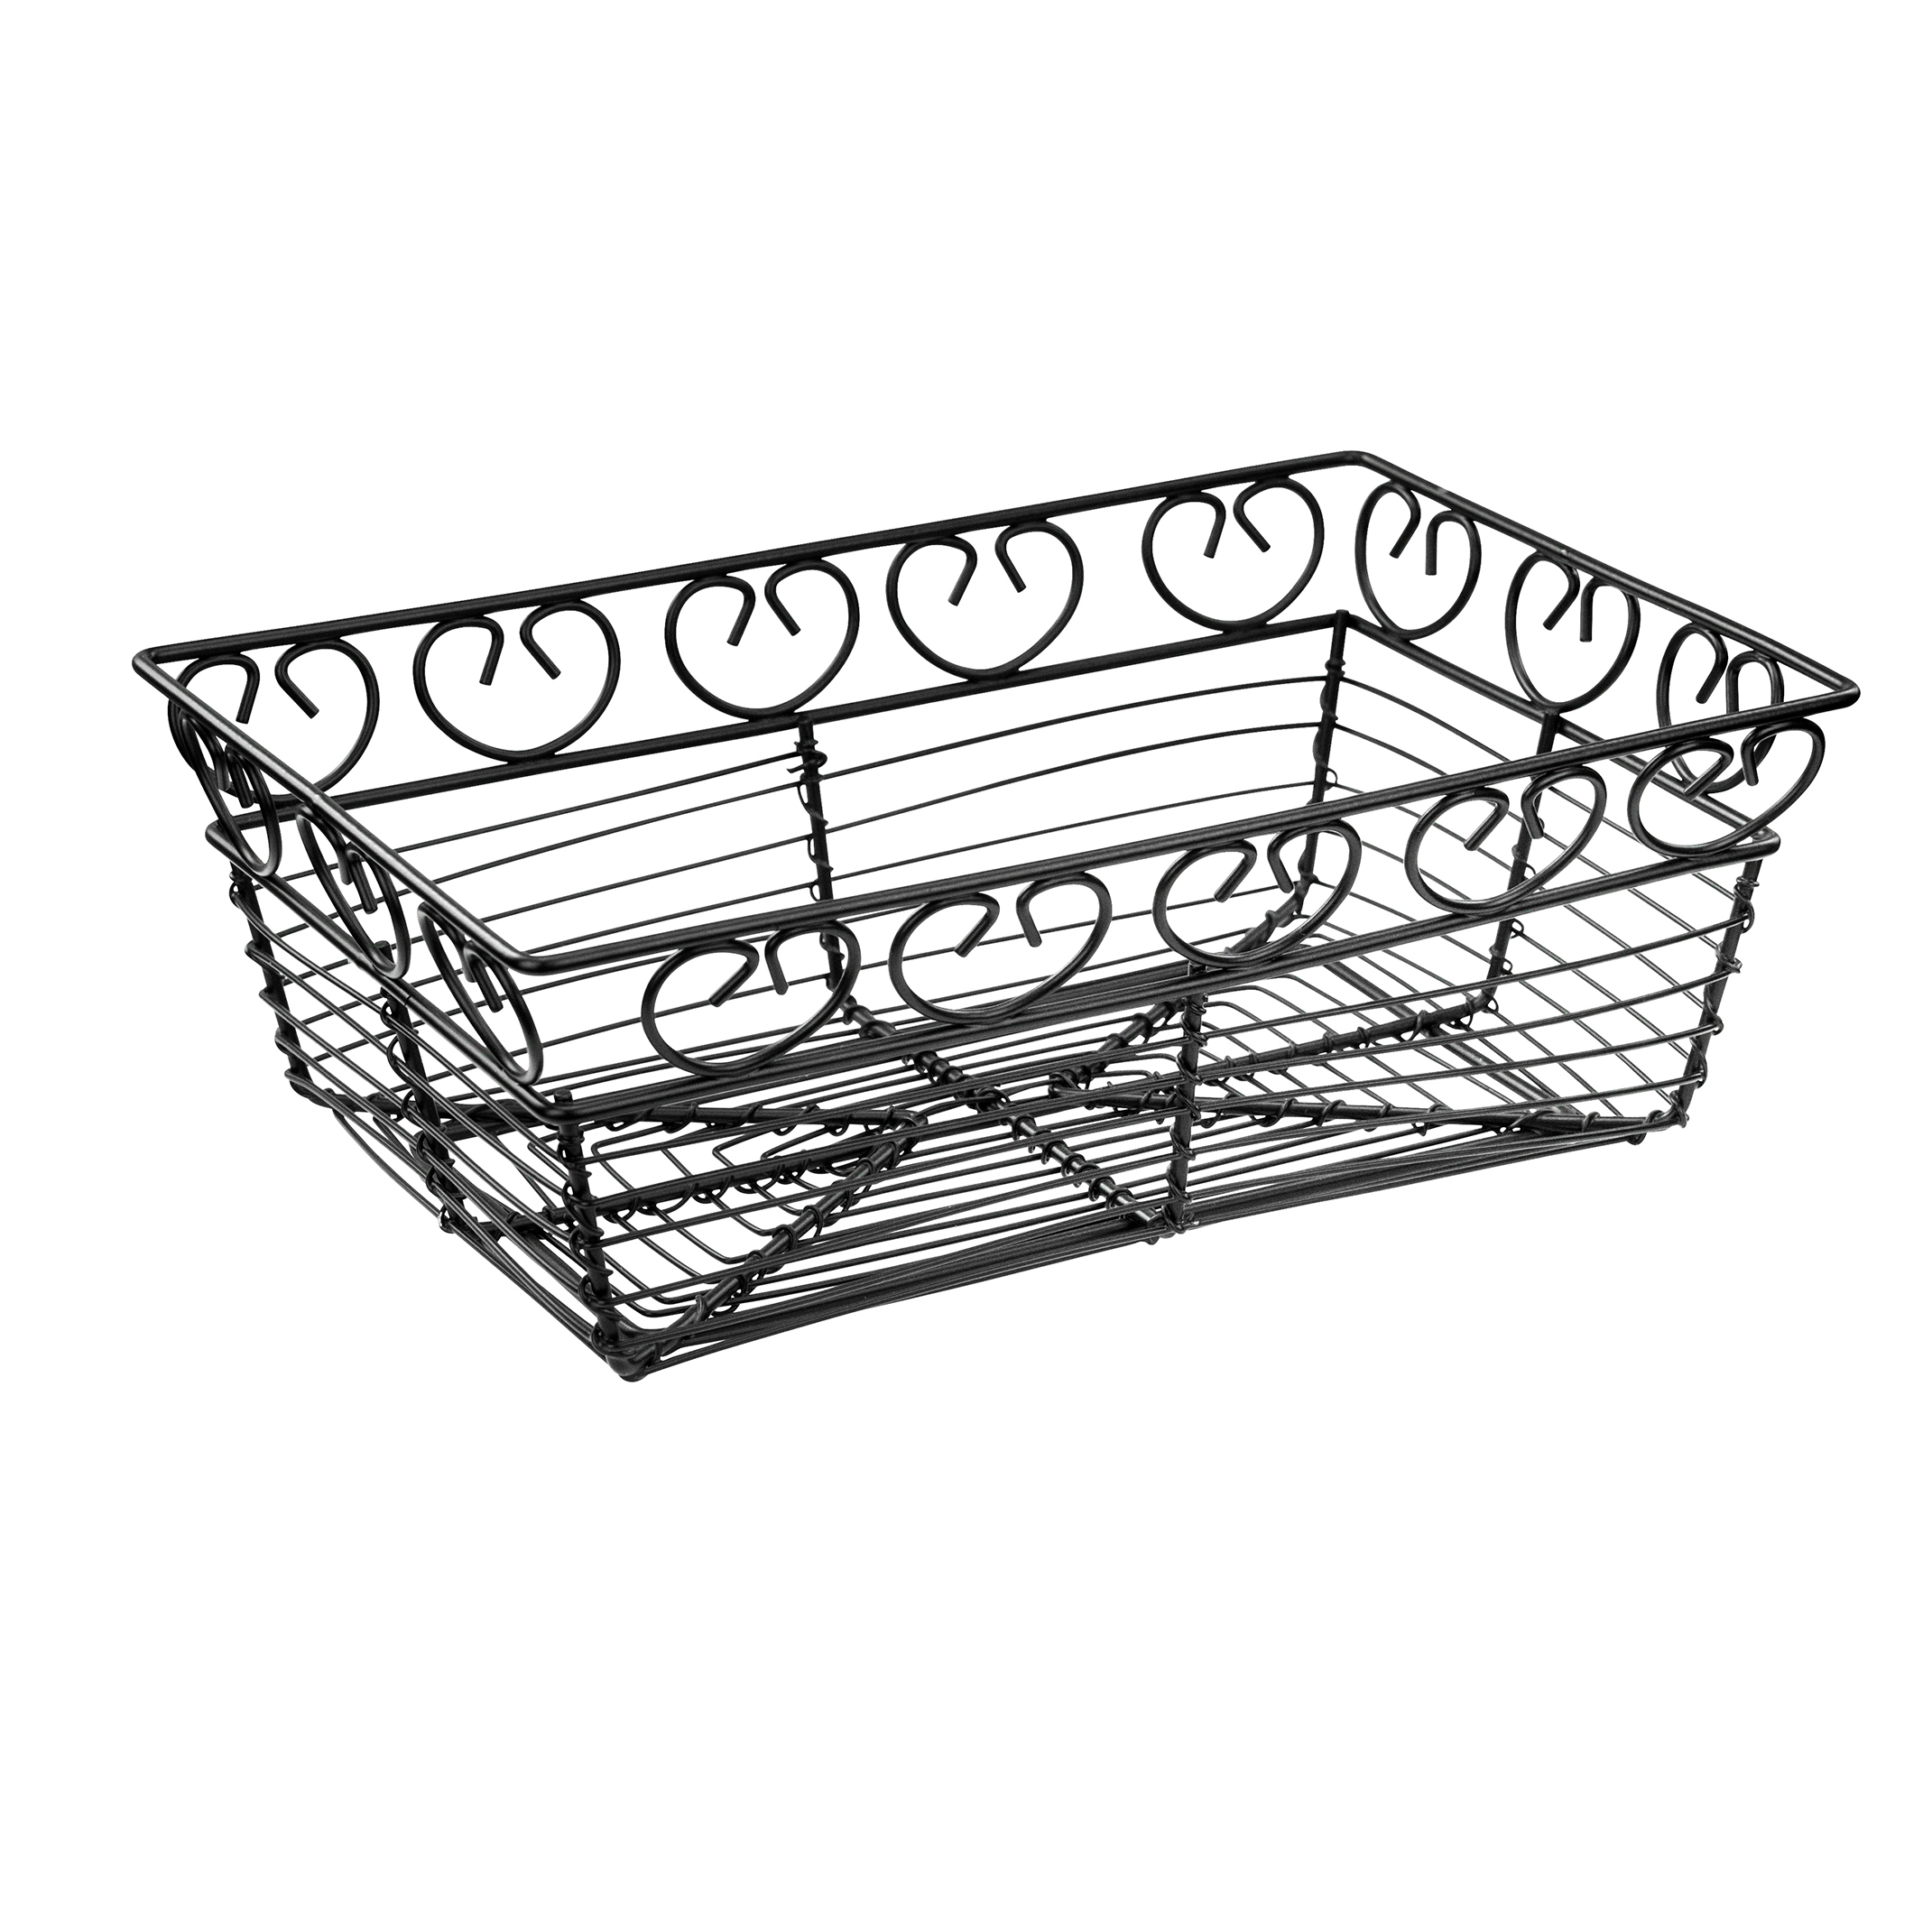 Winco WBKG-9 basket, tabletop, metal